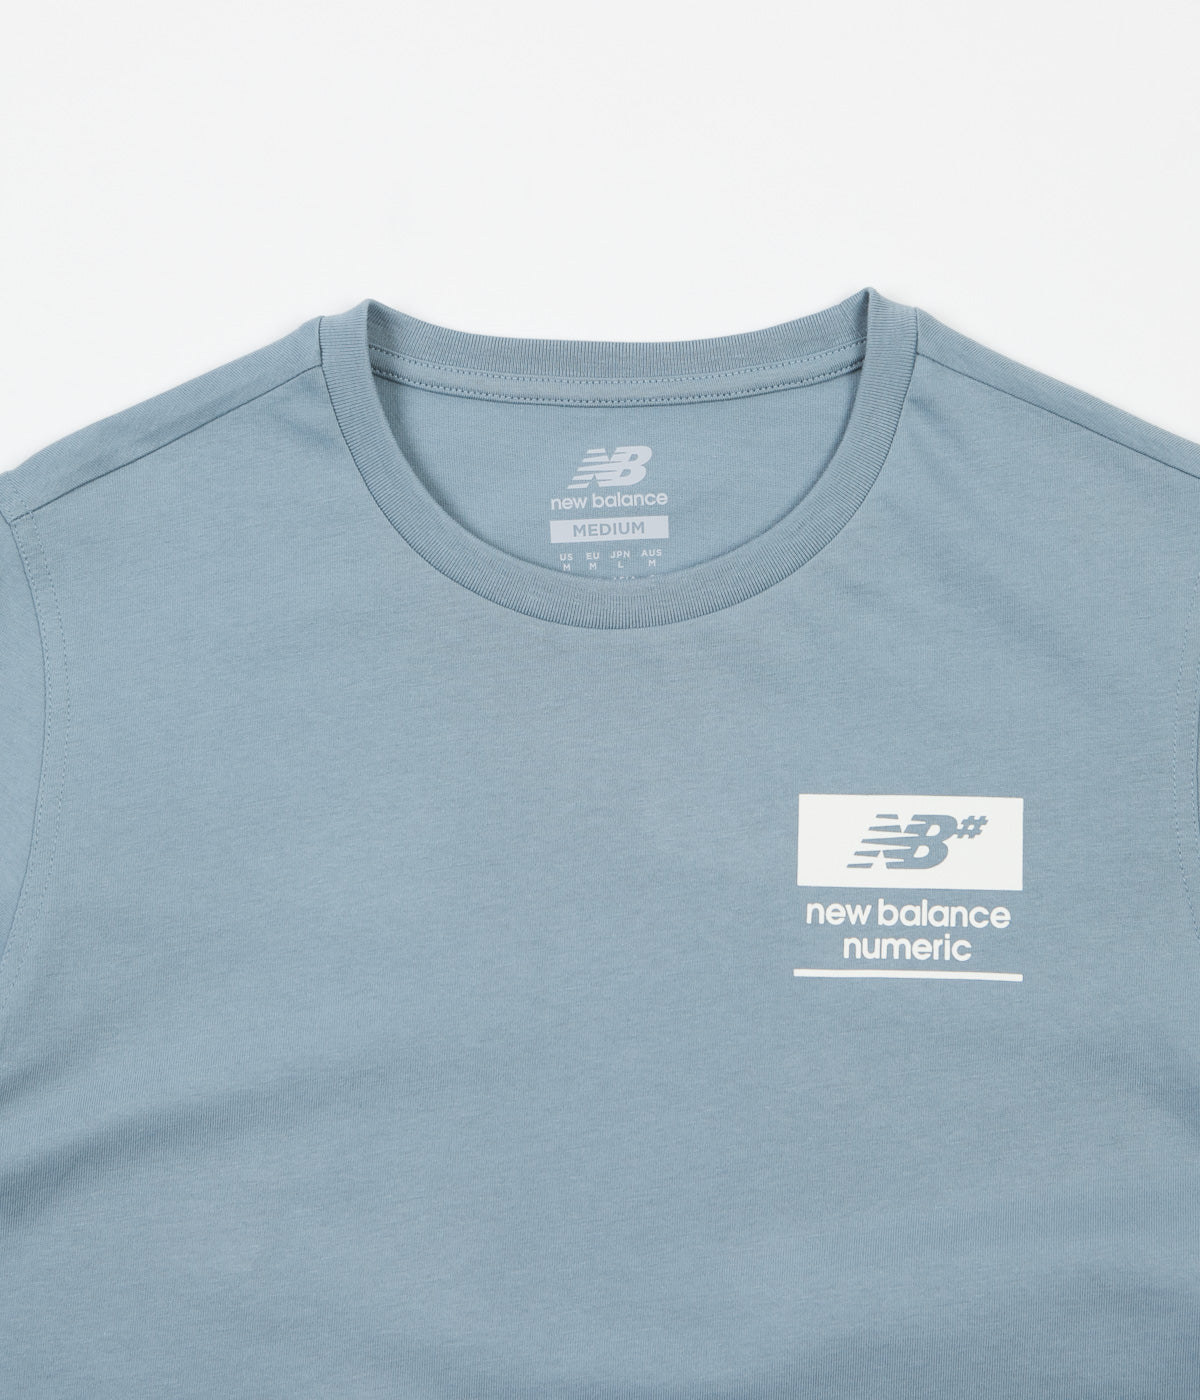 New Balance Numeric Stacked T-Shirt - Cyclone